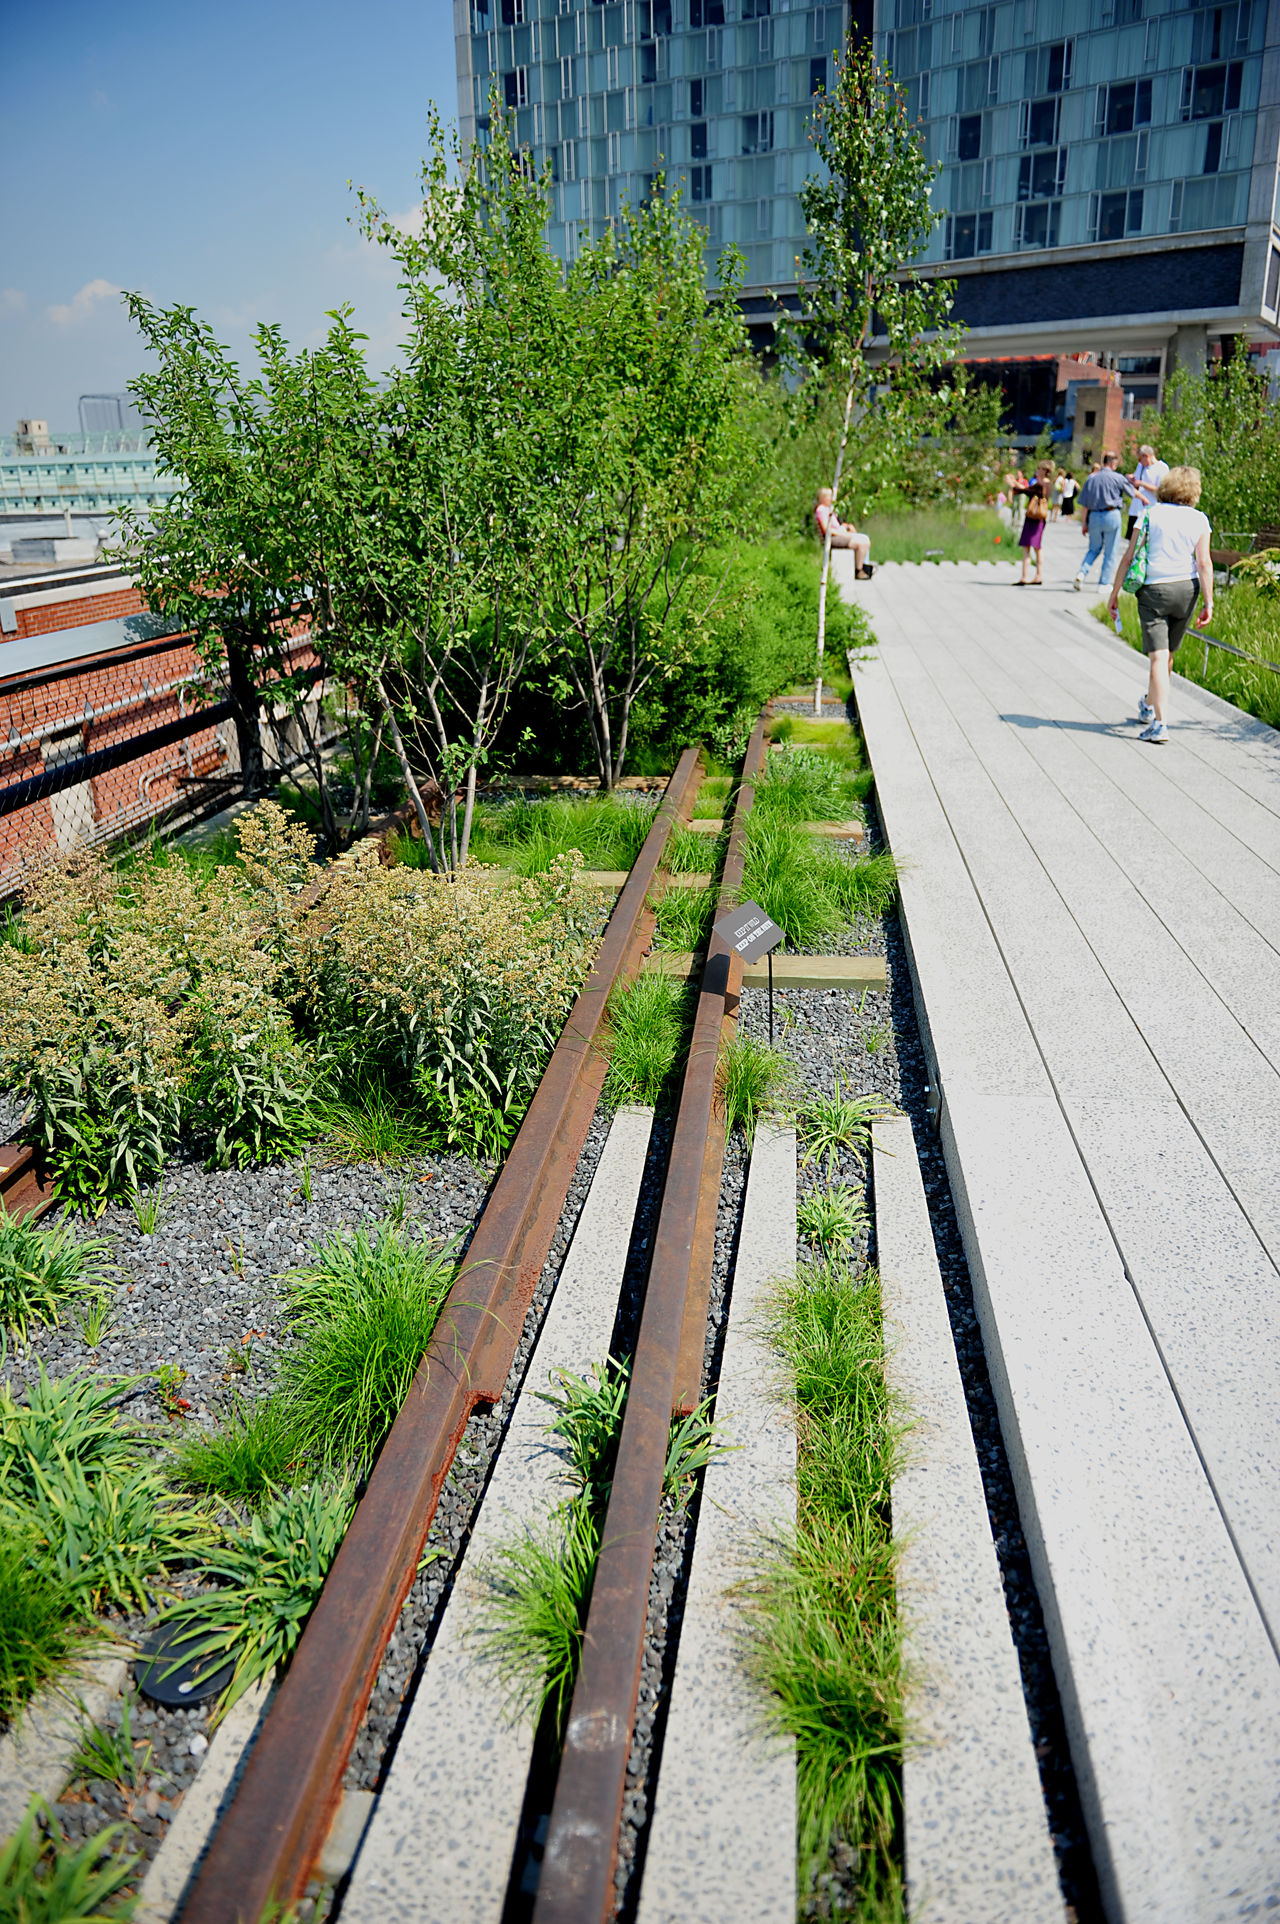 Architecture Building Exterior City High Line Park New York Outdoors Tree Urban Nature Walking